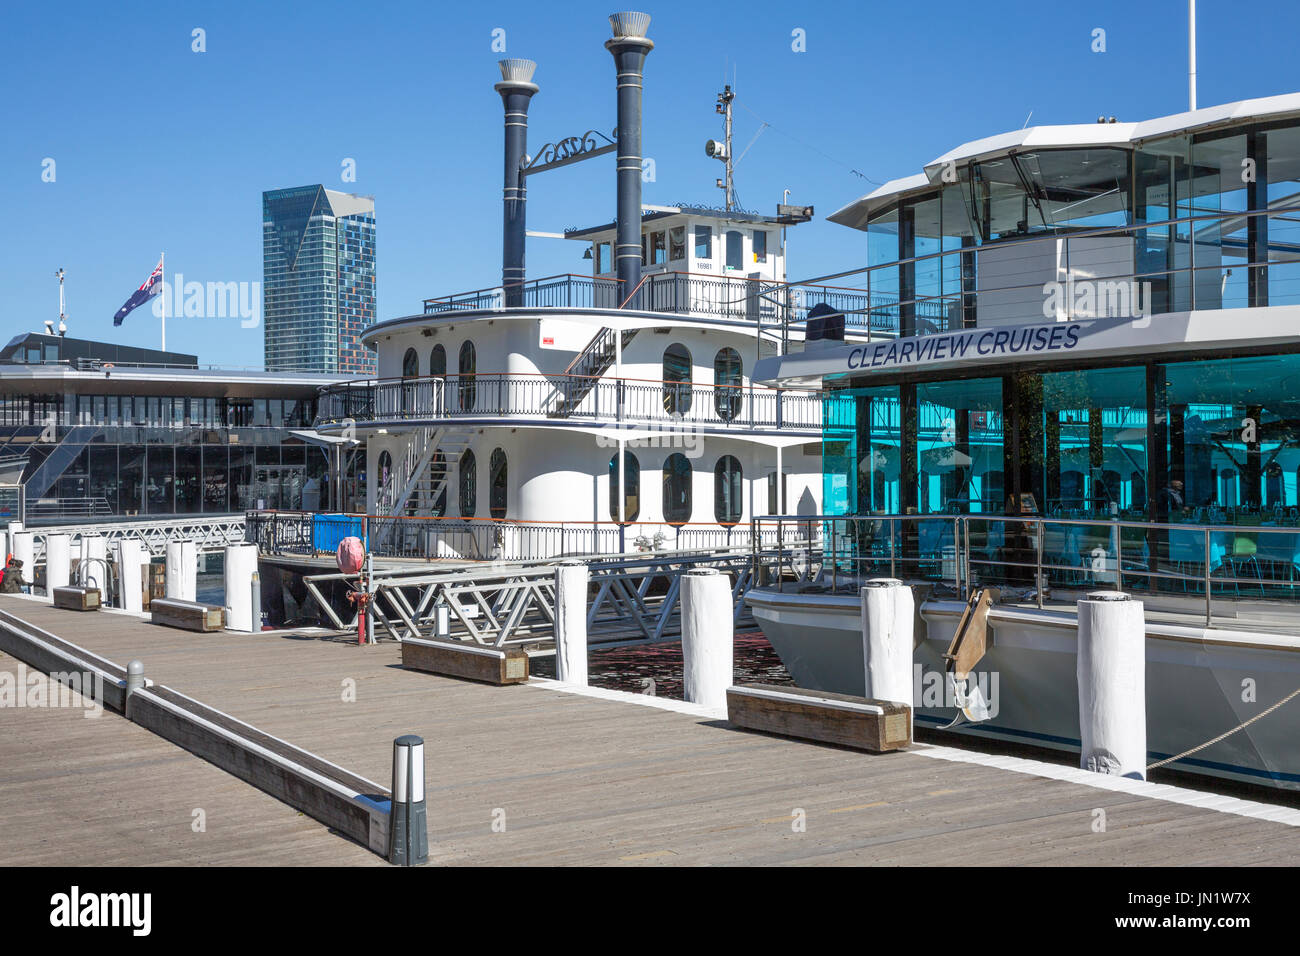 Darling harbour and marina in Sydney city centre,New South Wales,Australia - Stock Image